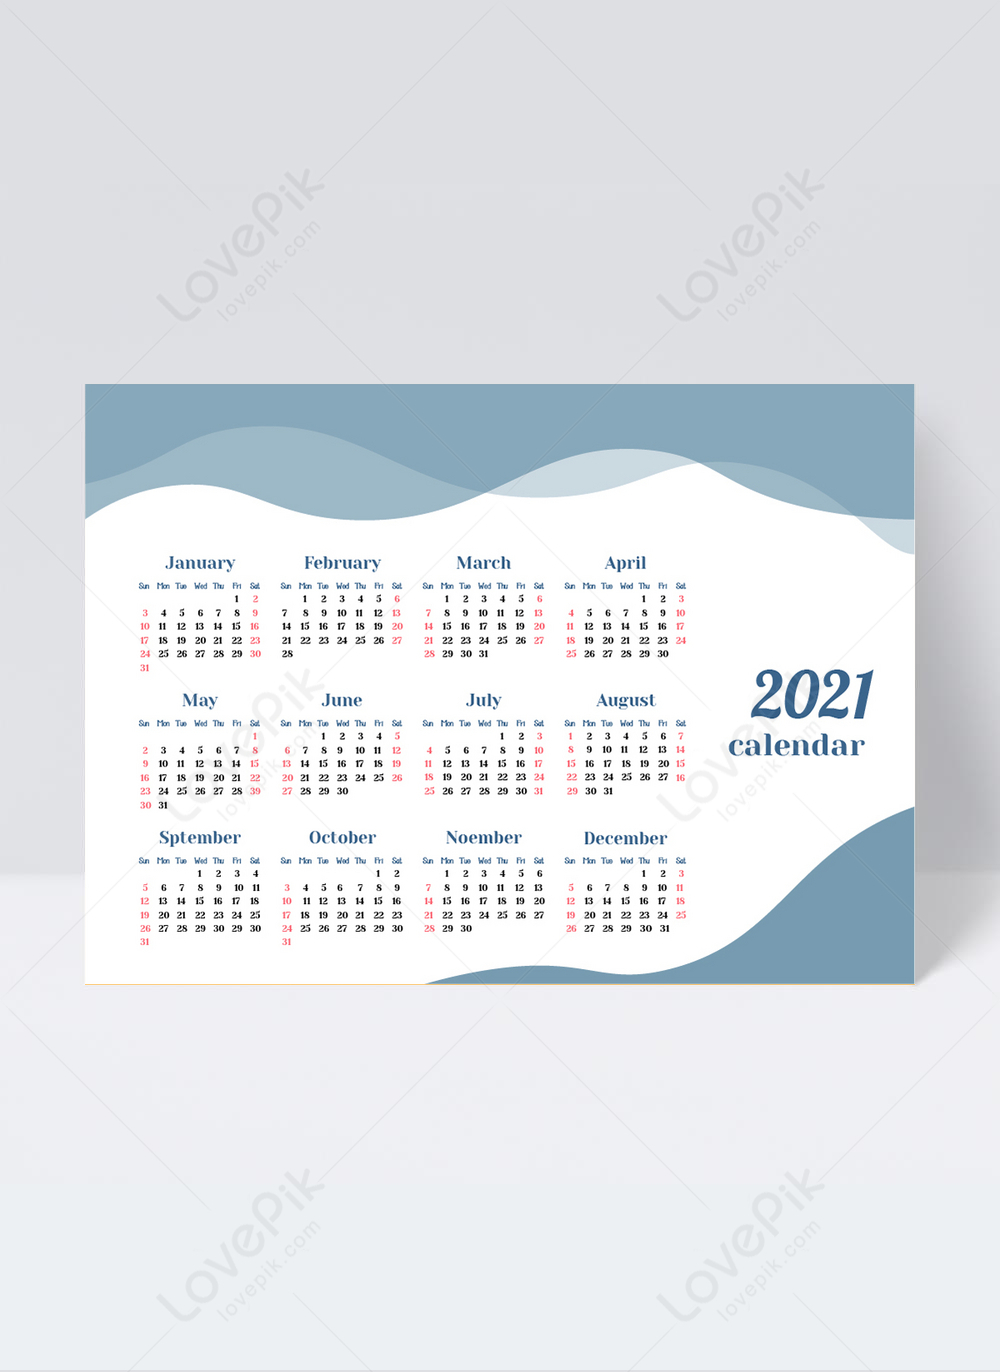 2021 Blue Stylish Business Calendar Template Image_Picture